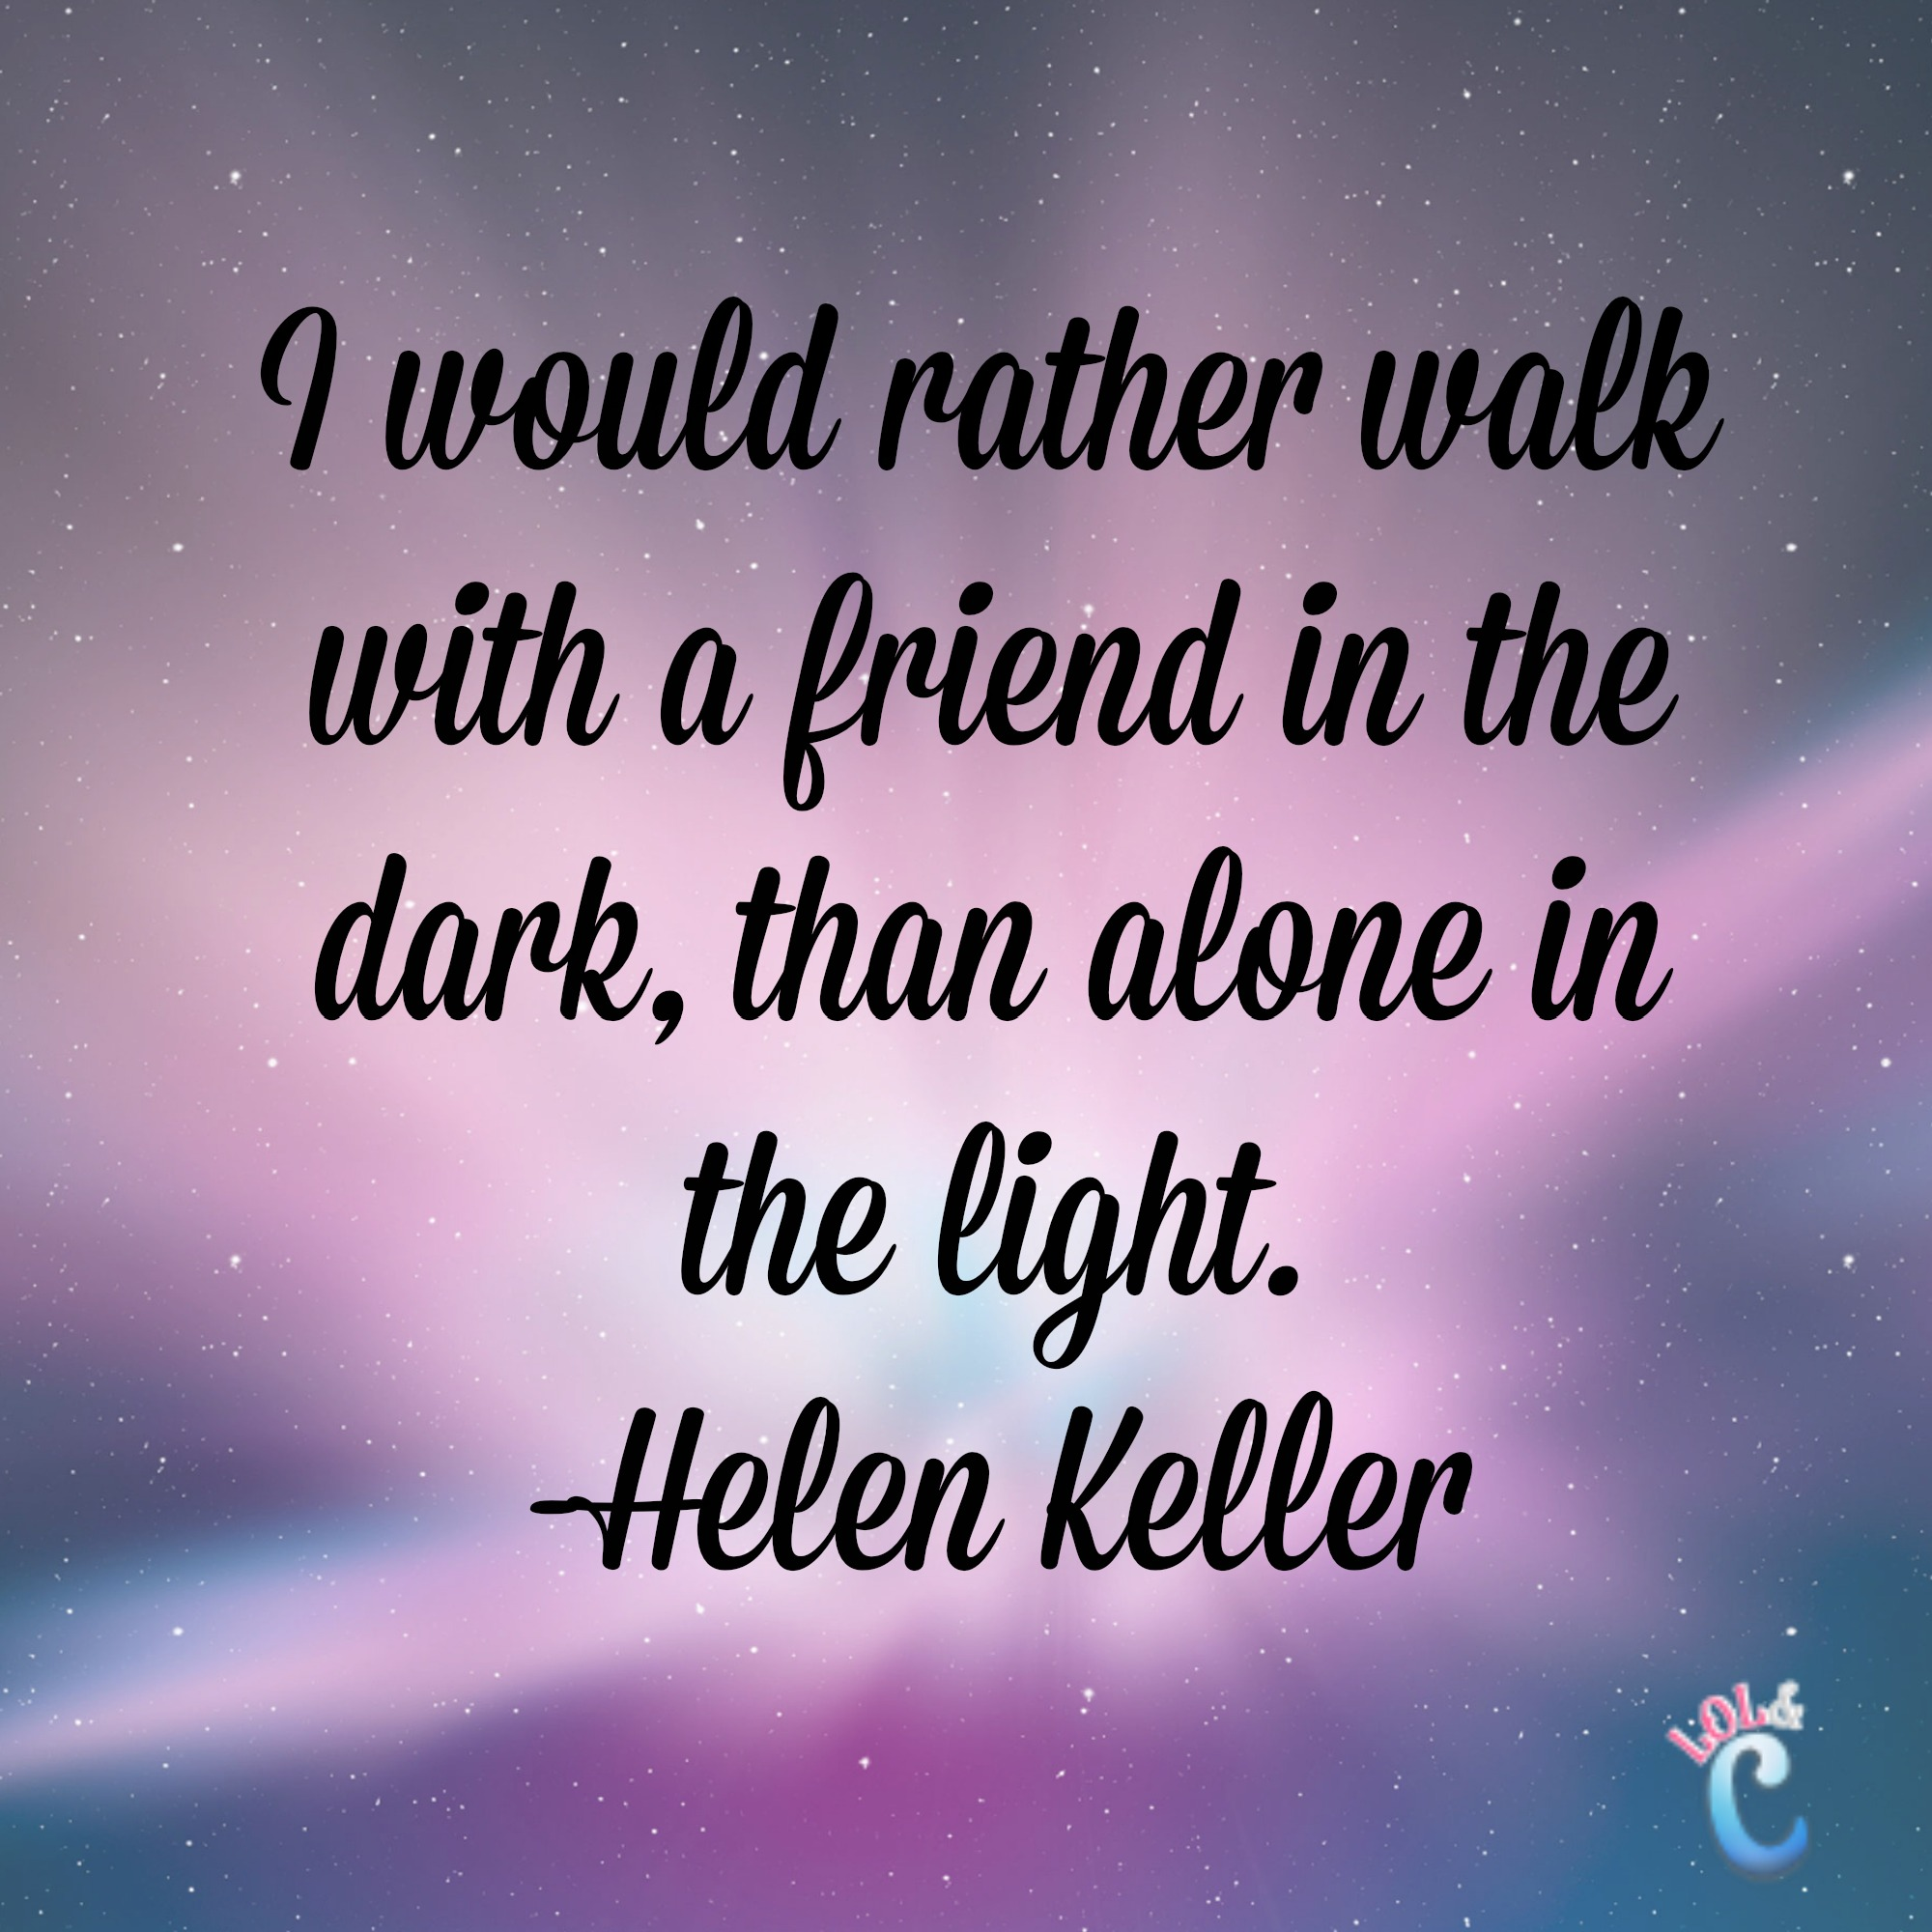 Inspirational And Friendship Quotes: Helen Keller Quotes. QuotesGram